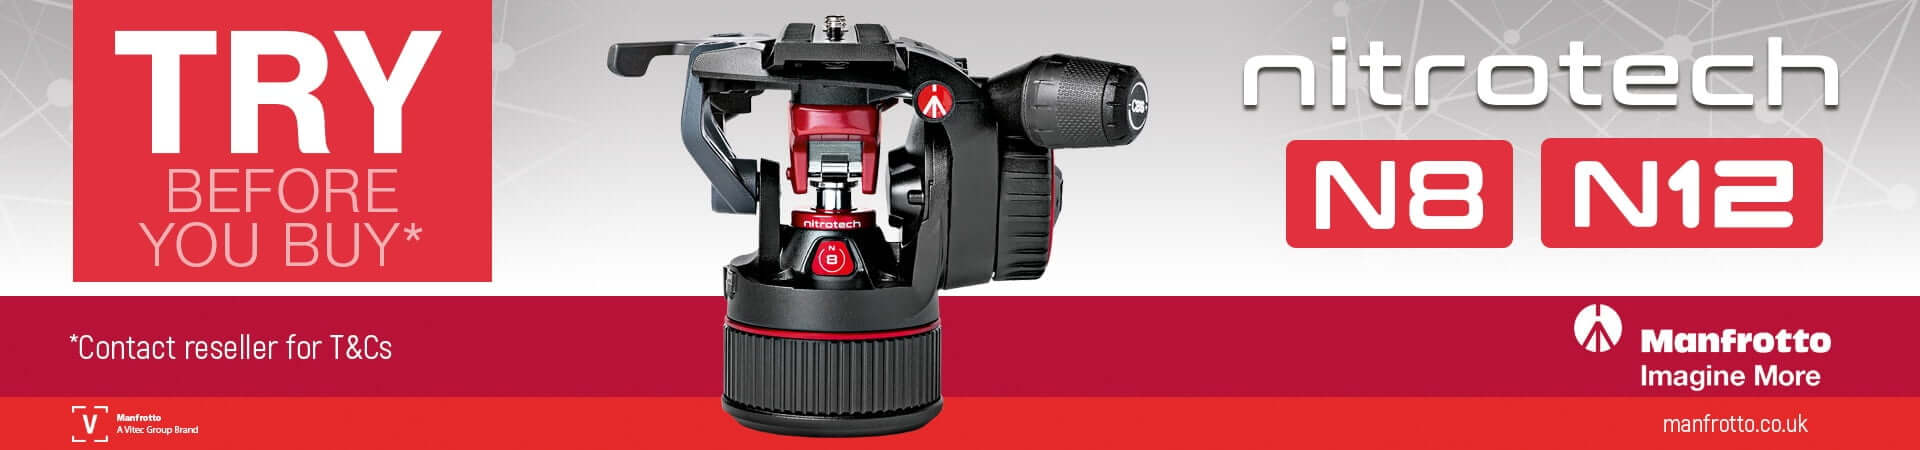 Manfrotto-nitrotech-try-before-you-buy-banner.jpg